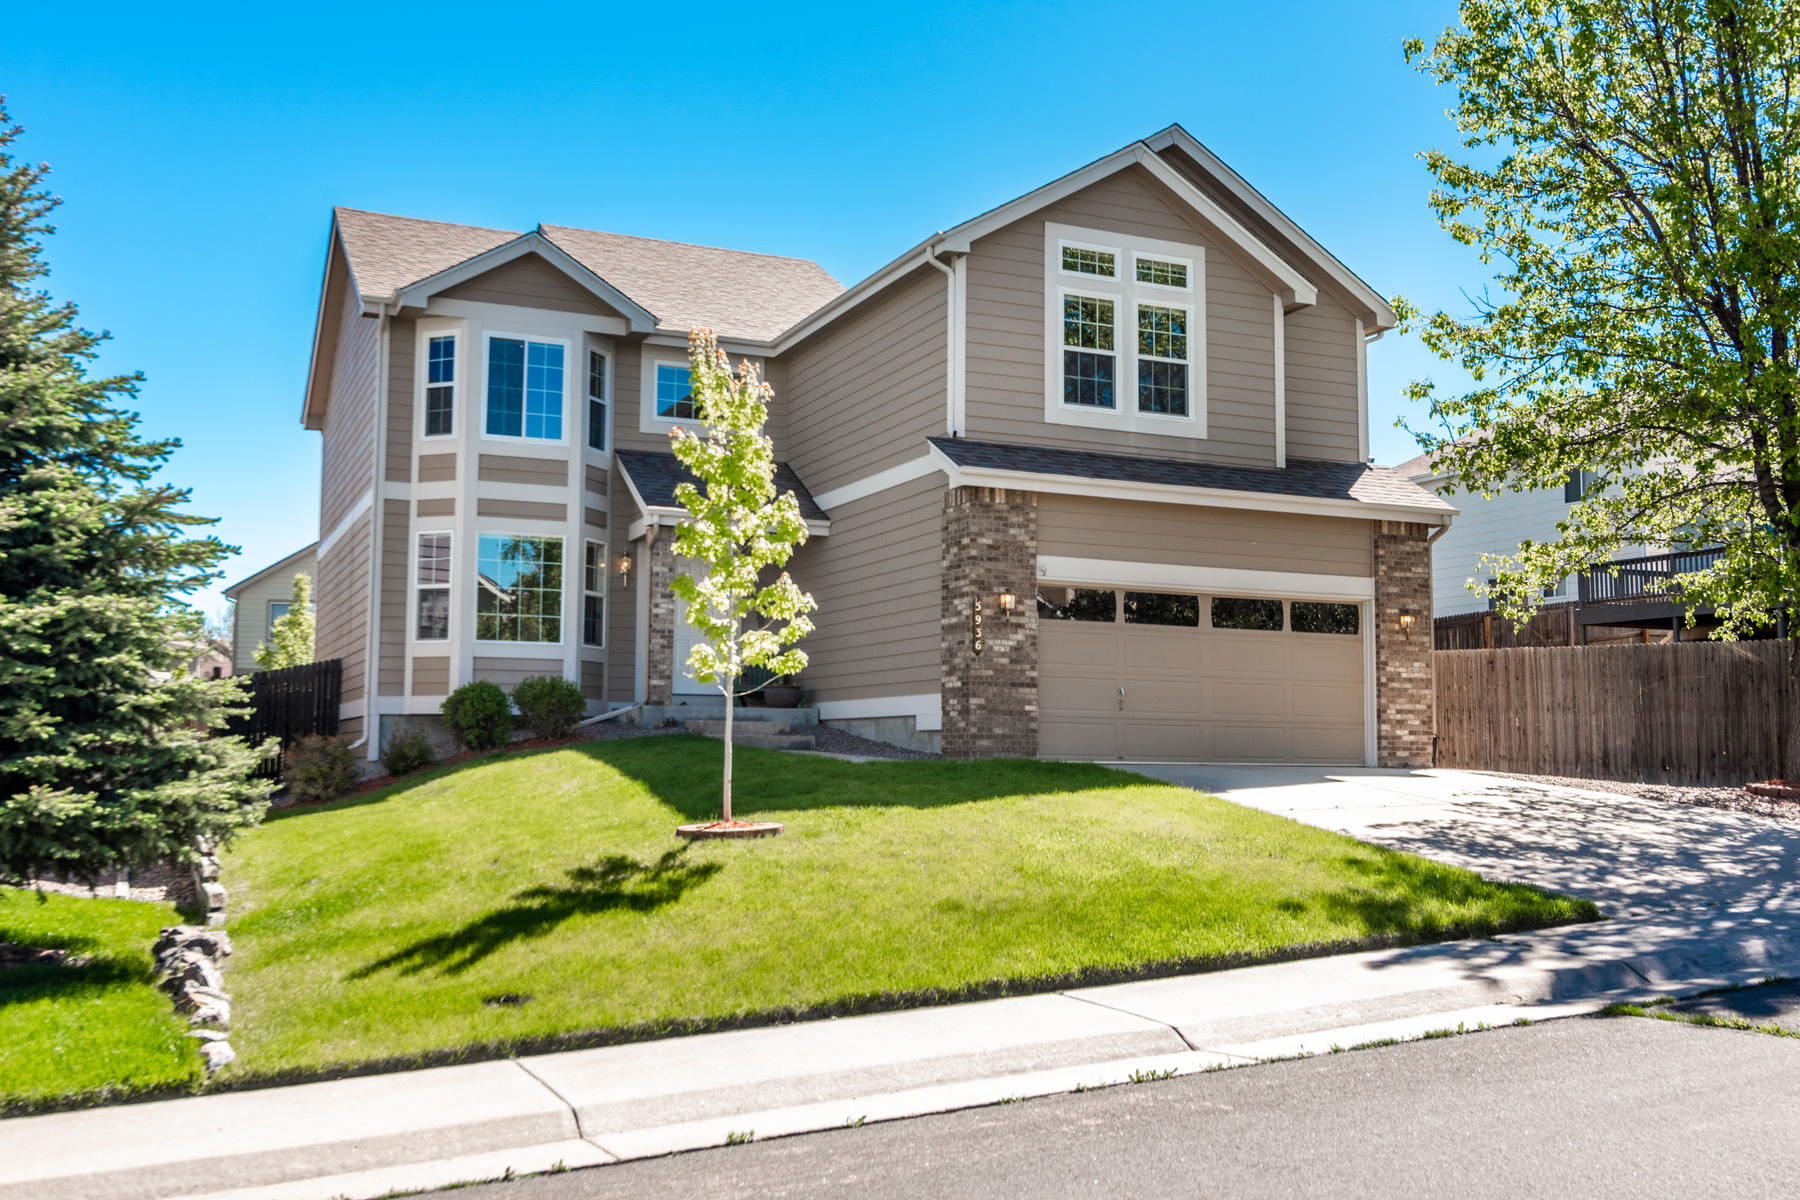 Single Family Homes for Sale at Immaculate & filled with natural light, in desirable Saddle Rock Ridge! 5936 S Valdai Way Aurora, Colorado 80015 United States